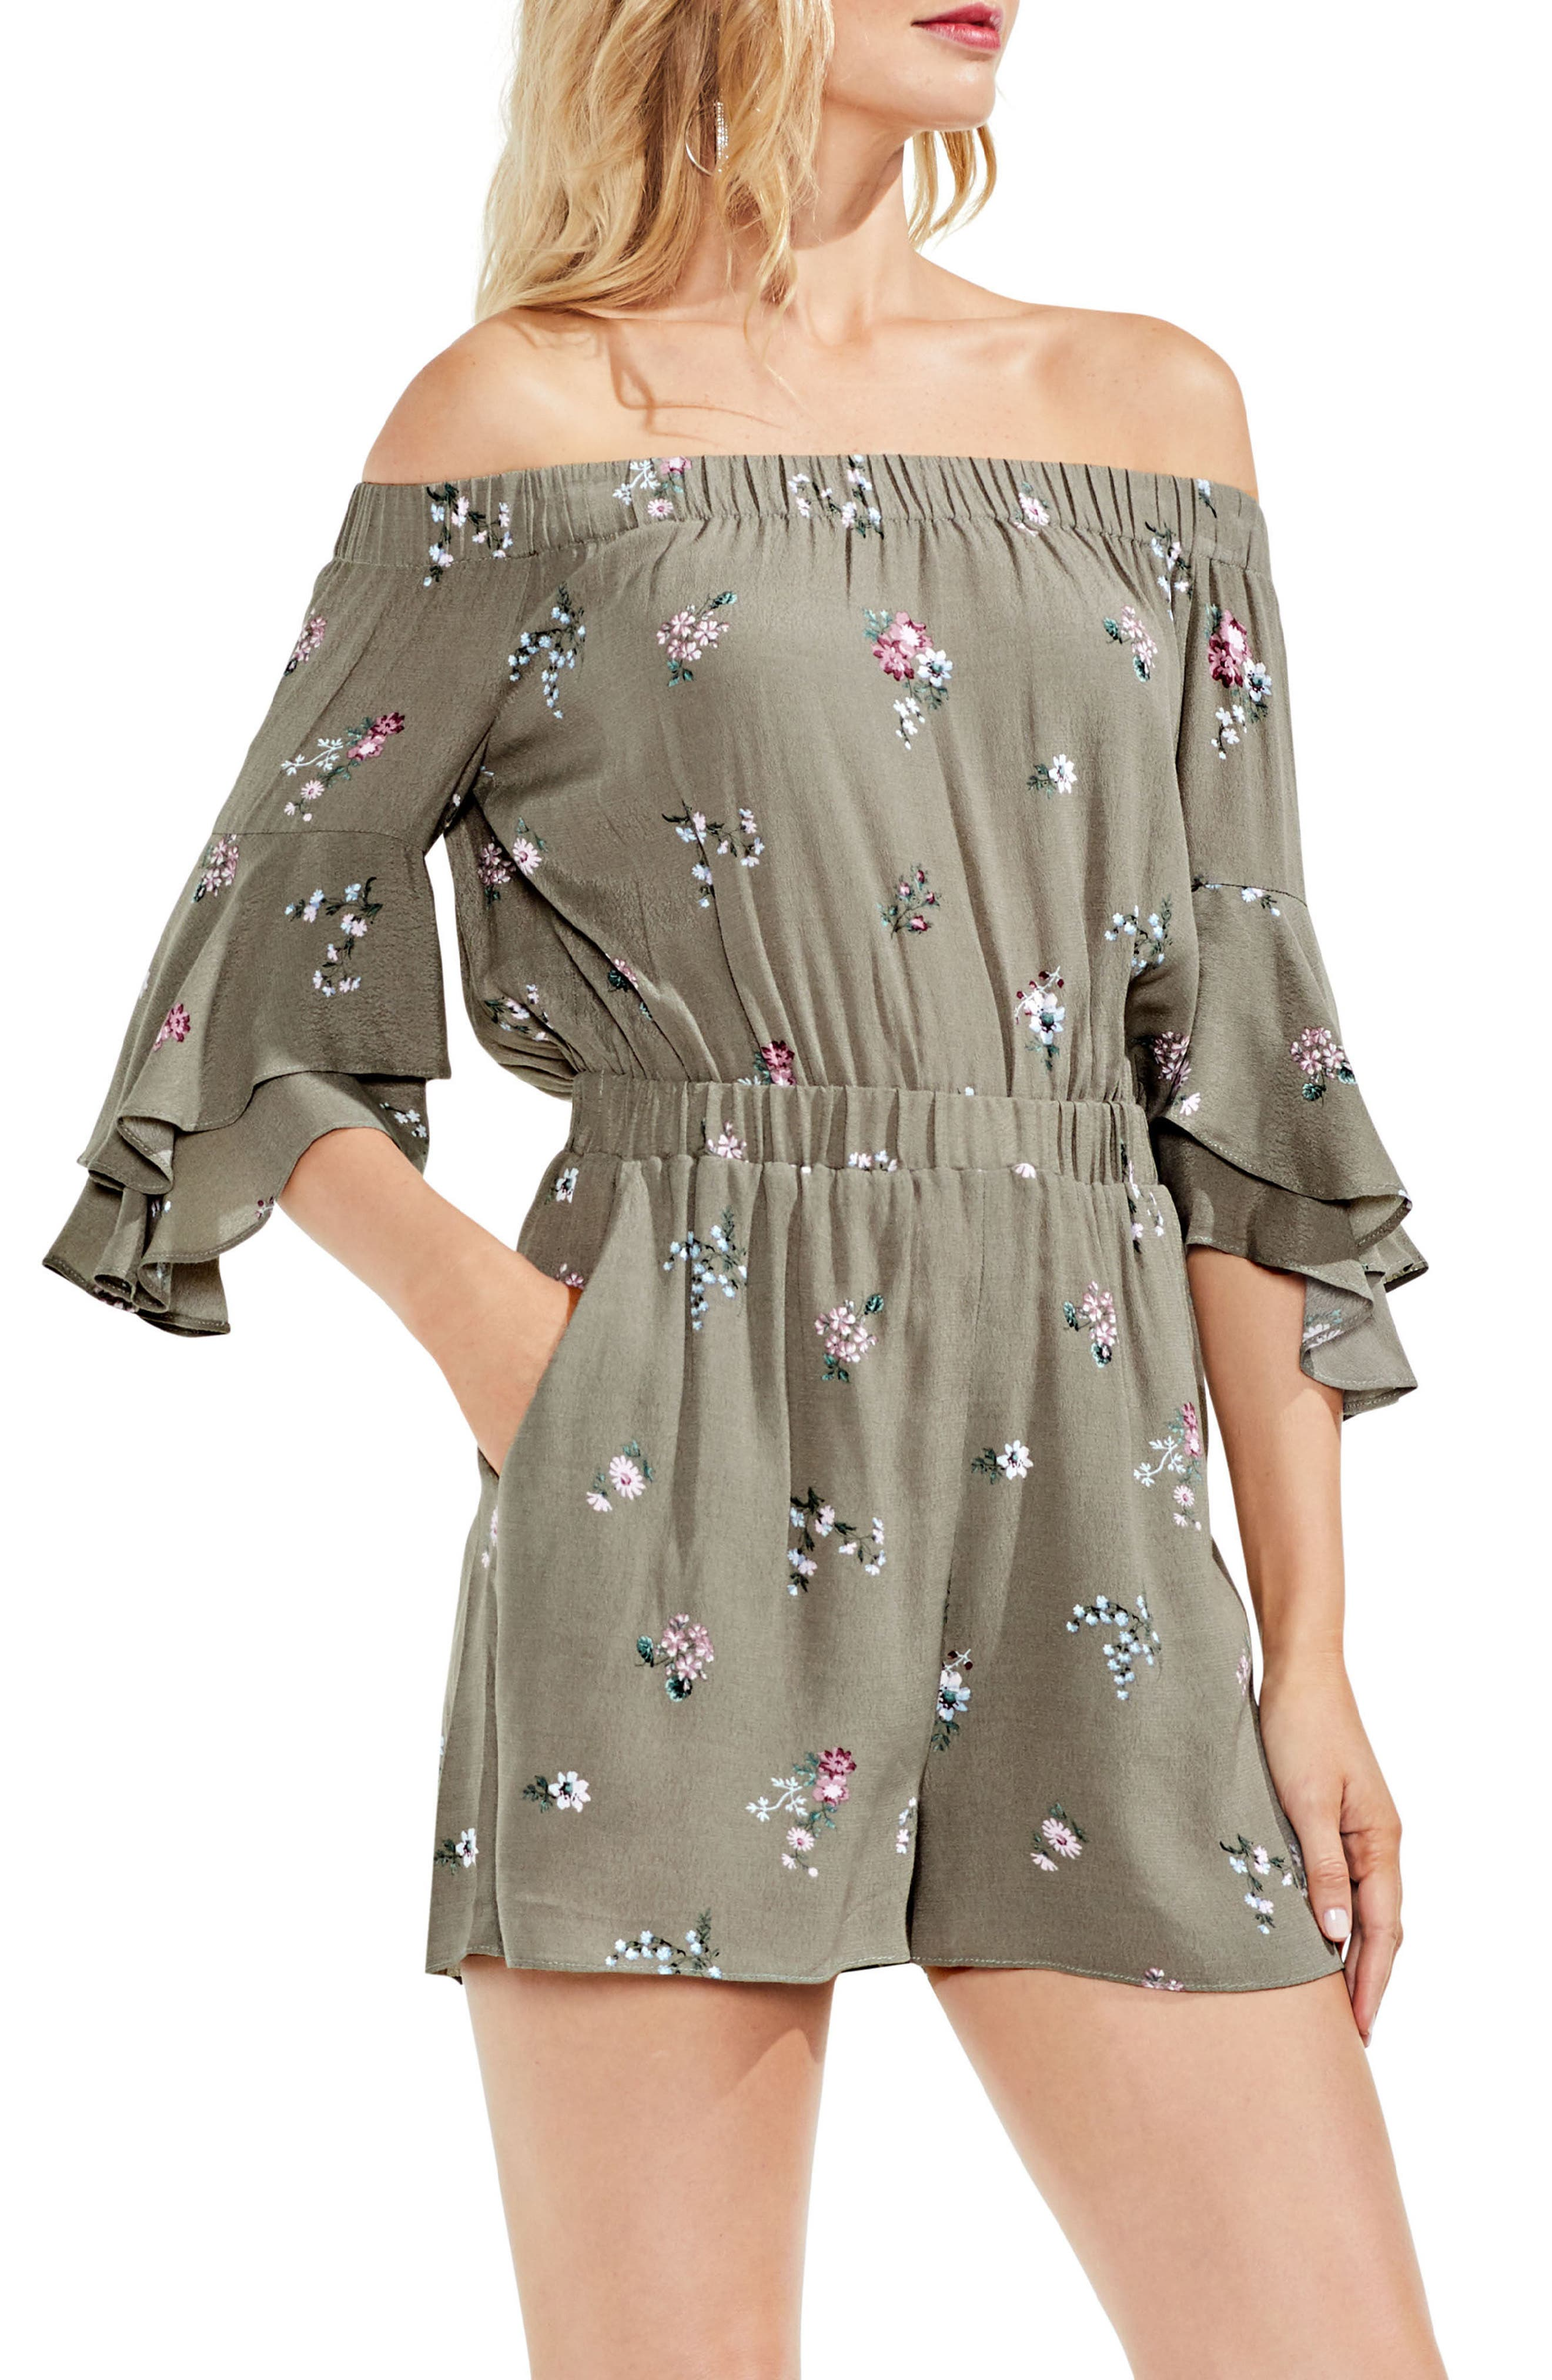 Off the Shoulder Ruffle Sleeve Floral Romper,                         Main,                         color, Camo Green